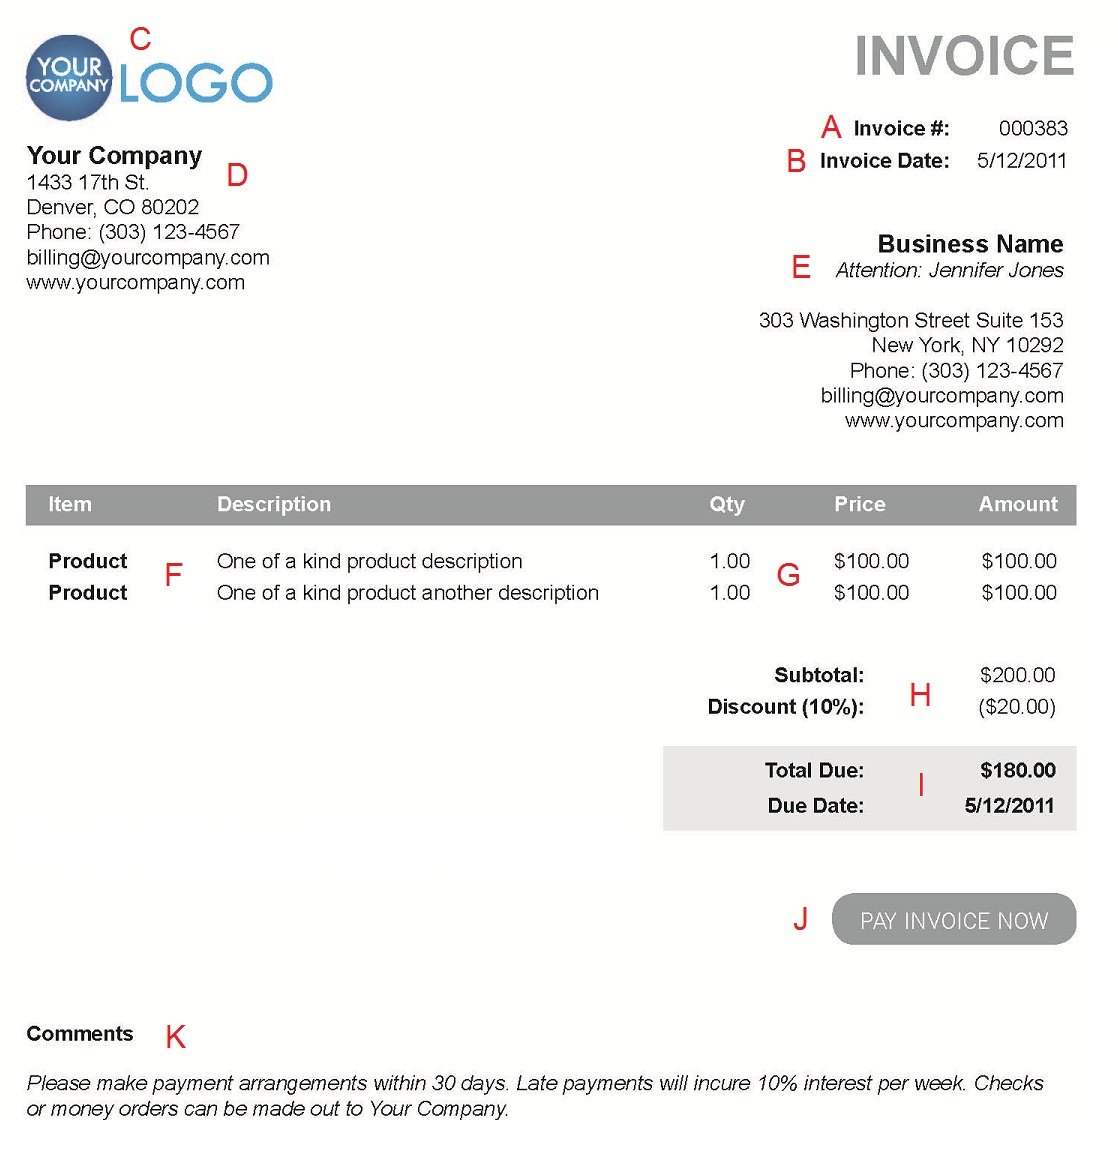 Darkfaderus  Prepossessing The  Different Sections Of An Electronic Payment Invoice With Interesting A  With Captivating Format Of Money Receipt Also Dumpling Receipt In Addition Receipts For Rental Property And Cheque Payment Receipt Format As Well As Customised Receipt Books Additionally Shop Receipt Template From Paysimplecom With Darkfaderus  Interesting The  Different Sections Of An Electronic Payment Invoice With Captivating A  And Prepossessing Format Of Money Receipt Also Dumpling Receipt In Addition Receipts For Rental Property From Paysimplecom